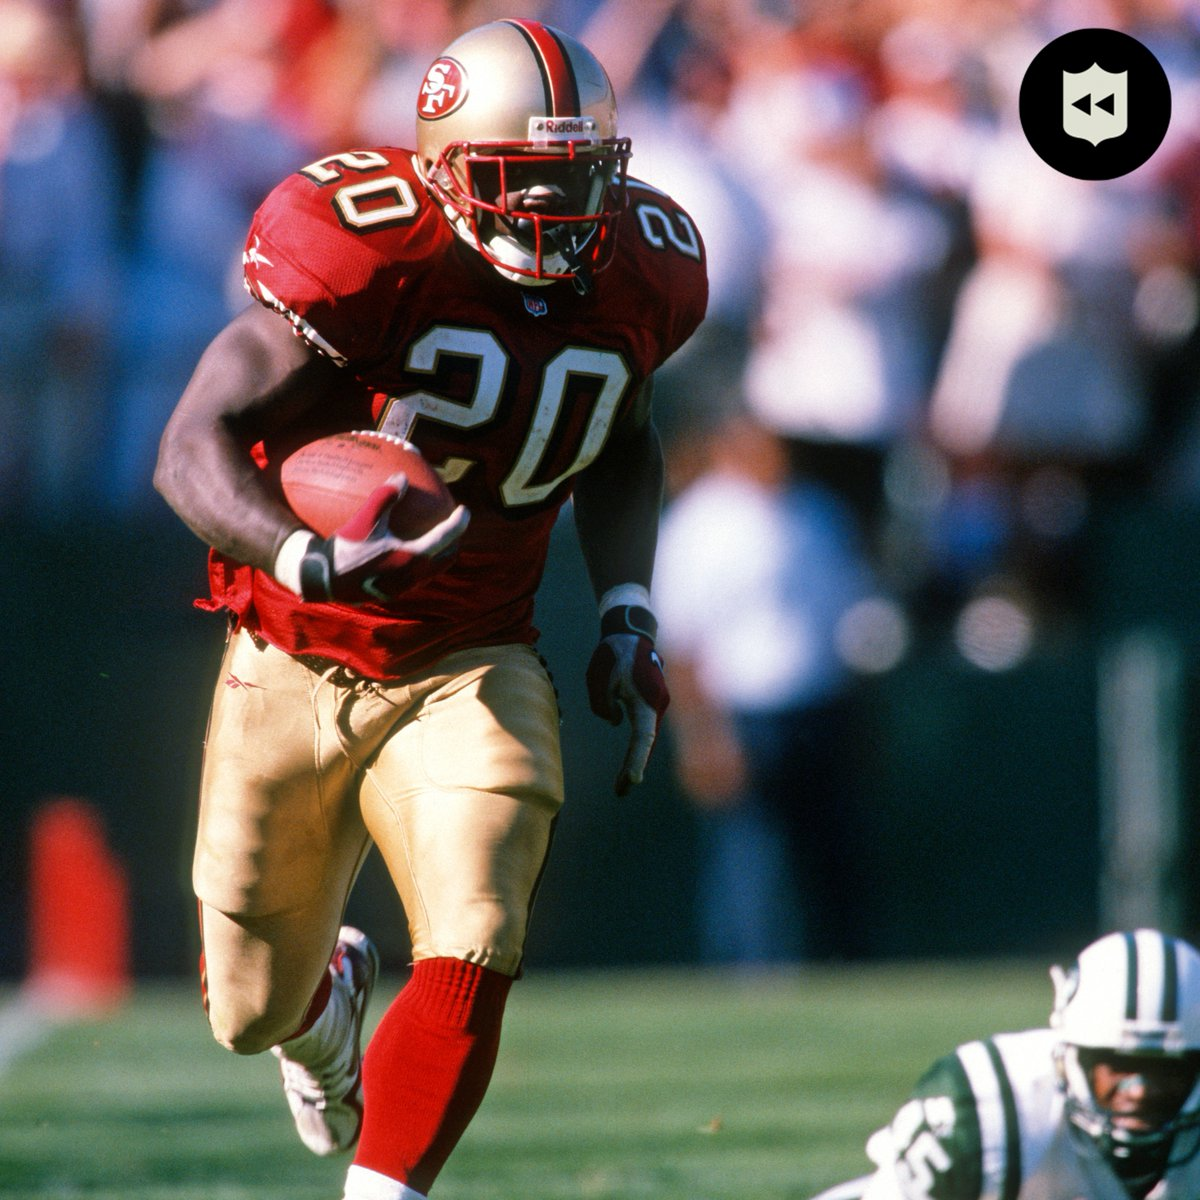 On this day in 1998, @garrisonhearst5 went 96 yards in OT. (Sept. 6, 1998)